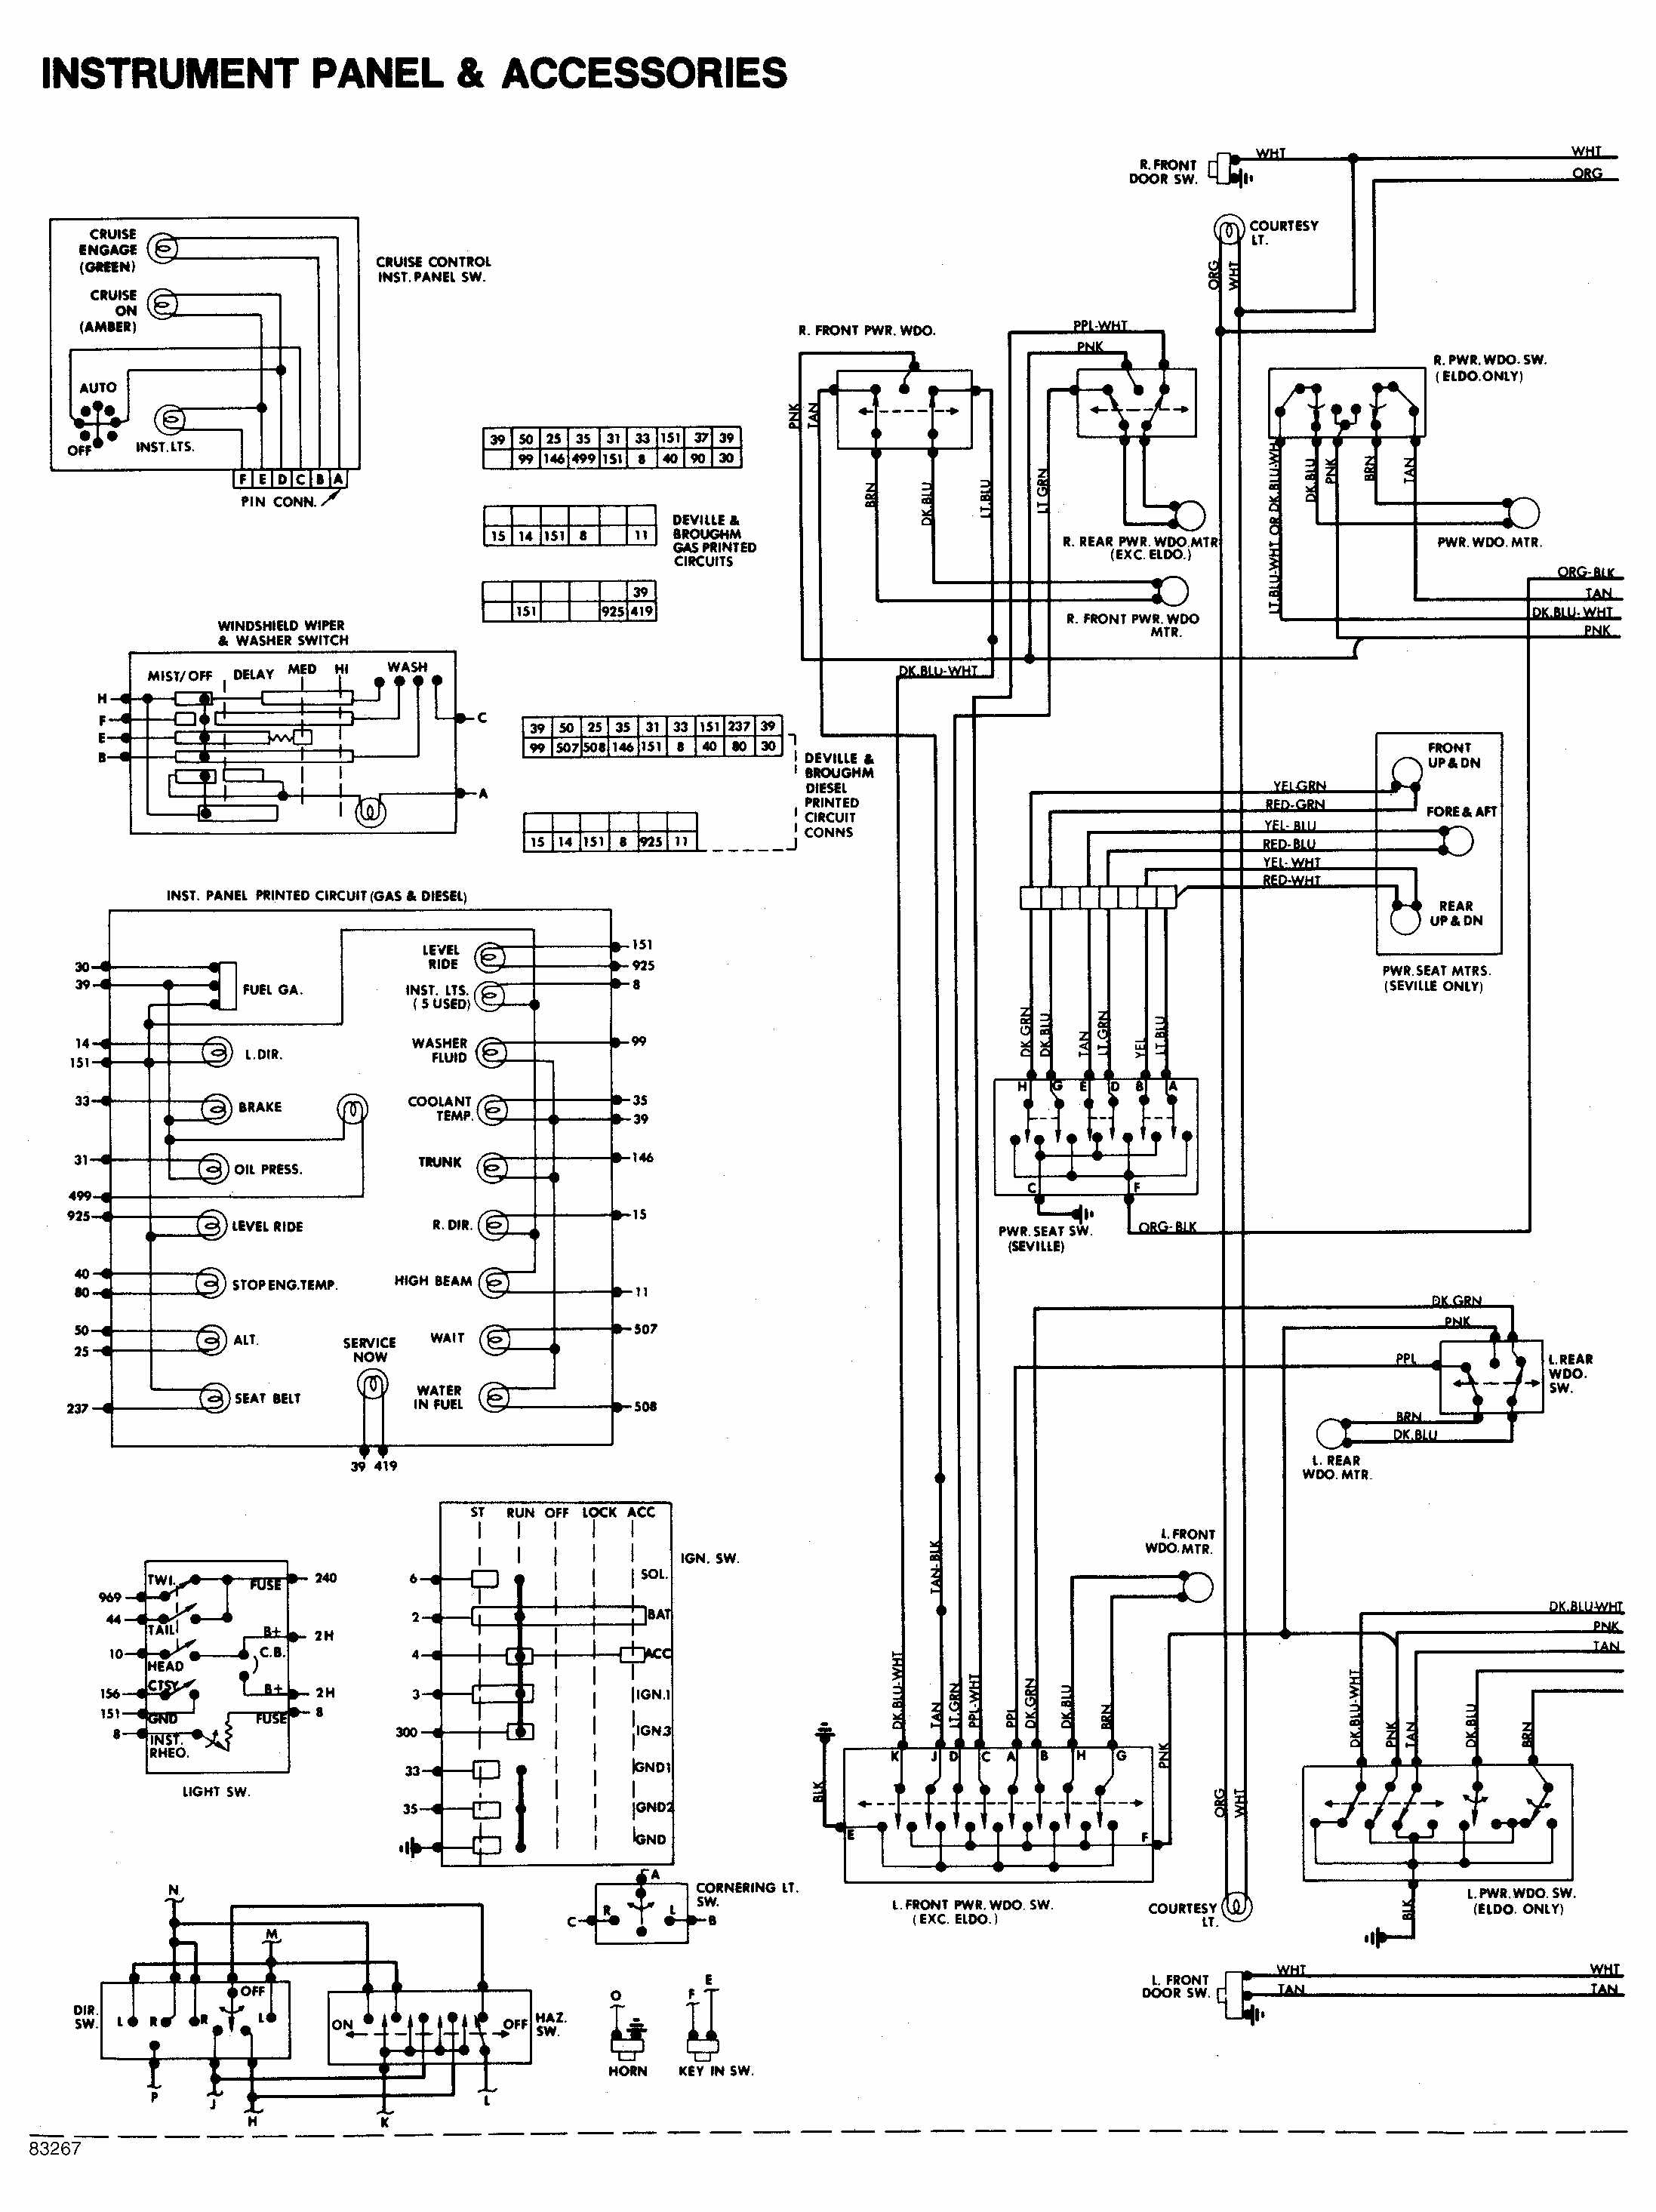 Abs Wiring Cadillac - New Era Of Wiring Diagram • on headlight wire harness, sc300 engine bay diagram, headlight socket diagram, radio shack rheostat diagram, 2007 mazda 6 headlight diagram, circuit diagram, fuse box diagram, 2000 nissan maxima hoses diagram, switch diagram, headlight assembly, 2007 escalade parts diagram, bmw 325i diagram, headlight connector diagram, headlight harness diagram, ignition diagram, headlight parts diagram, headlight repair, headlight cover, 2008 chevy impala transmission diagram, international 4700 fuse panel diagram,